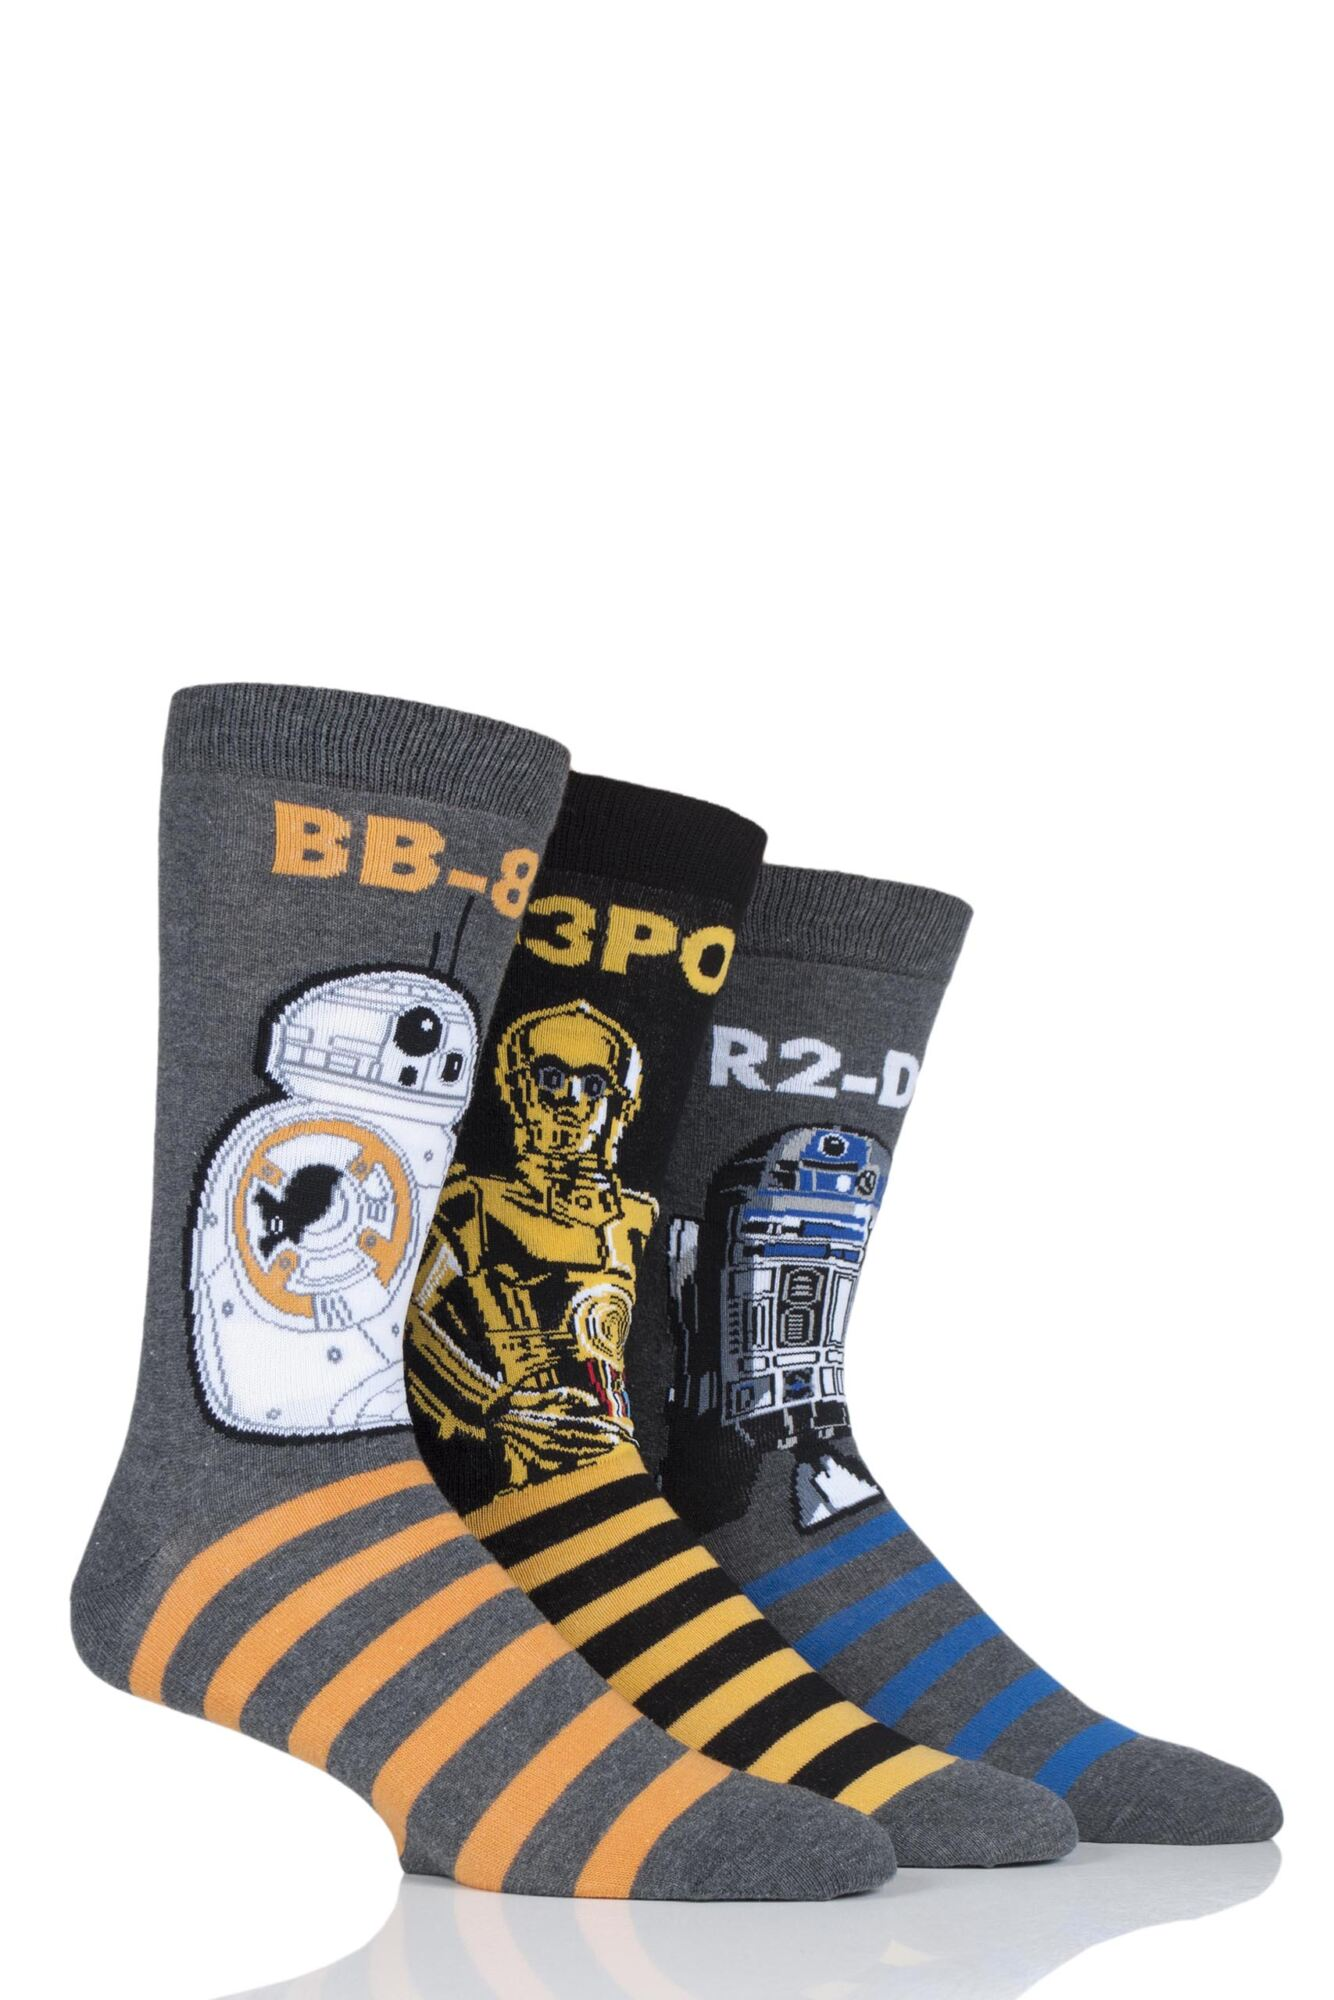 3 Pair Cotton Socks Men's - Film & TV Characters